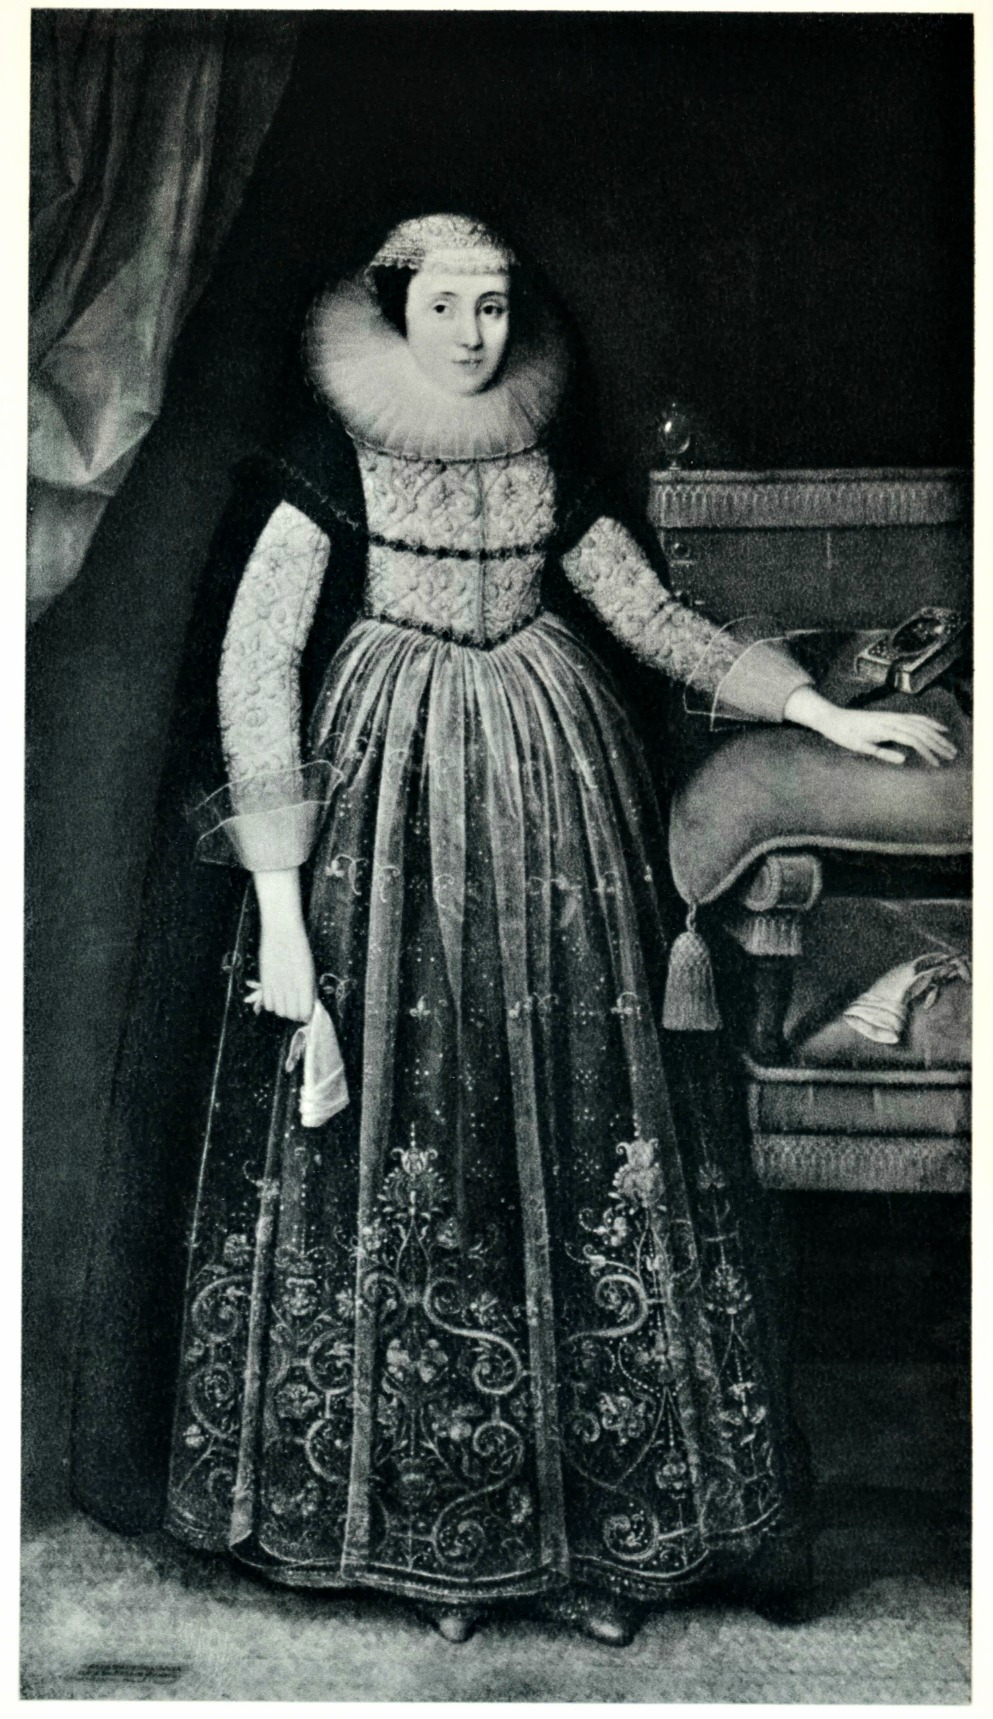 Gheeraerts the Younger, Elizabeth Cherry, Lady Russell, 1625.